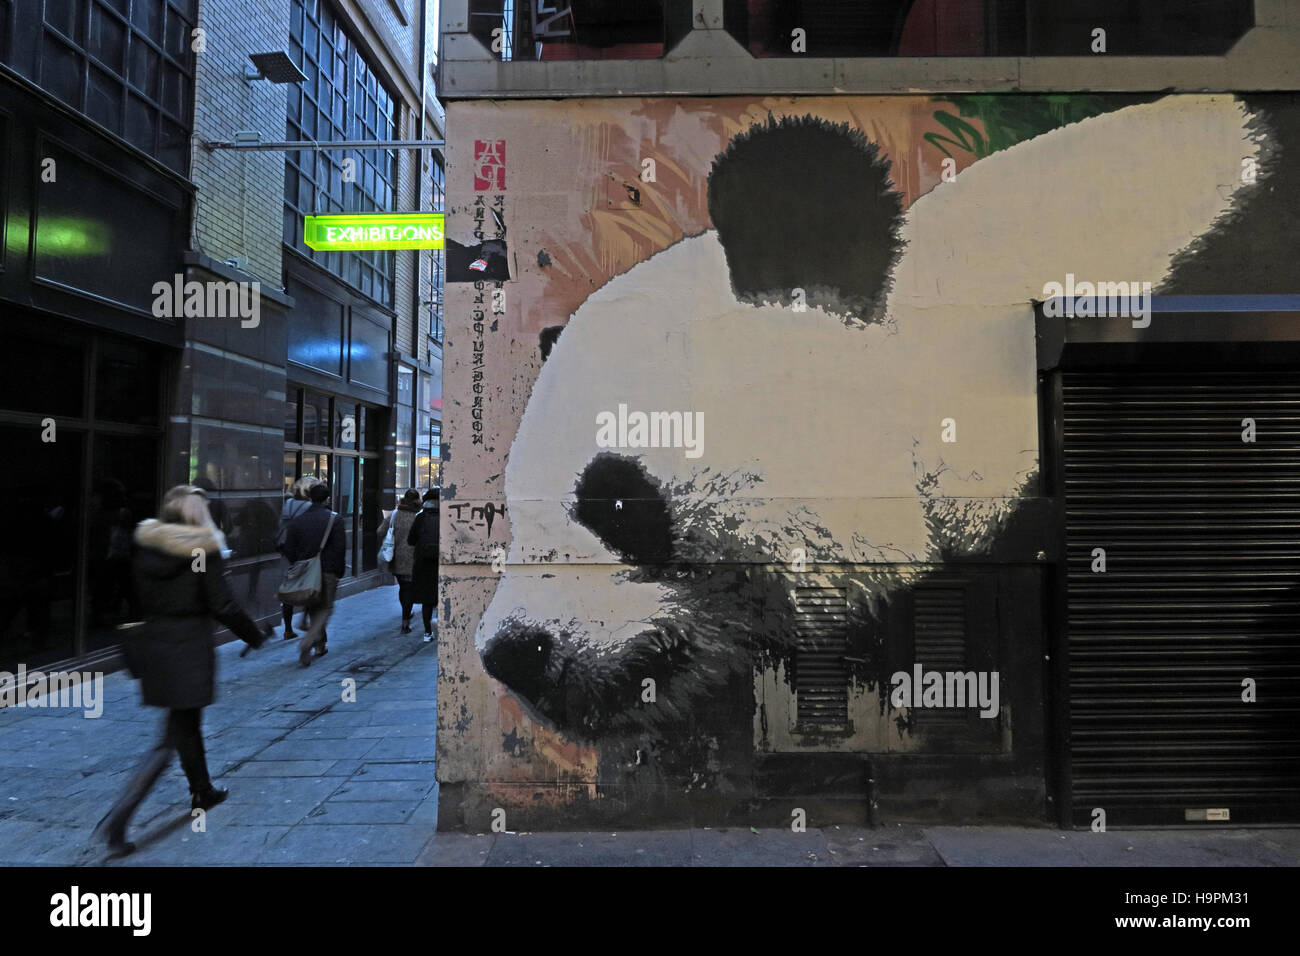 art,artist,spray,template,animal,street,st,streets,ln,Glasgow,Scotland,UK,city,centre,people,persons,person,Lighthouse,Panda graffiti,Mitchell Lane,city centre,The Lighthouse,GoTonySmith,@HotpixUK,Tony,Smith,UK,GB,Great,Britain,United,Kingdom,English,British,England,Buy Pictures of,Buy Images Of,Images of,Stock Images,Tony Smith,United Kingdom,Great Britain,British Isles